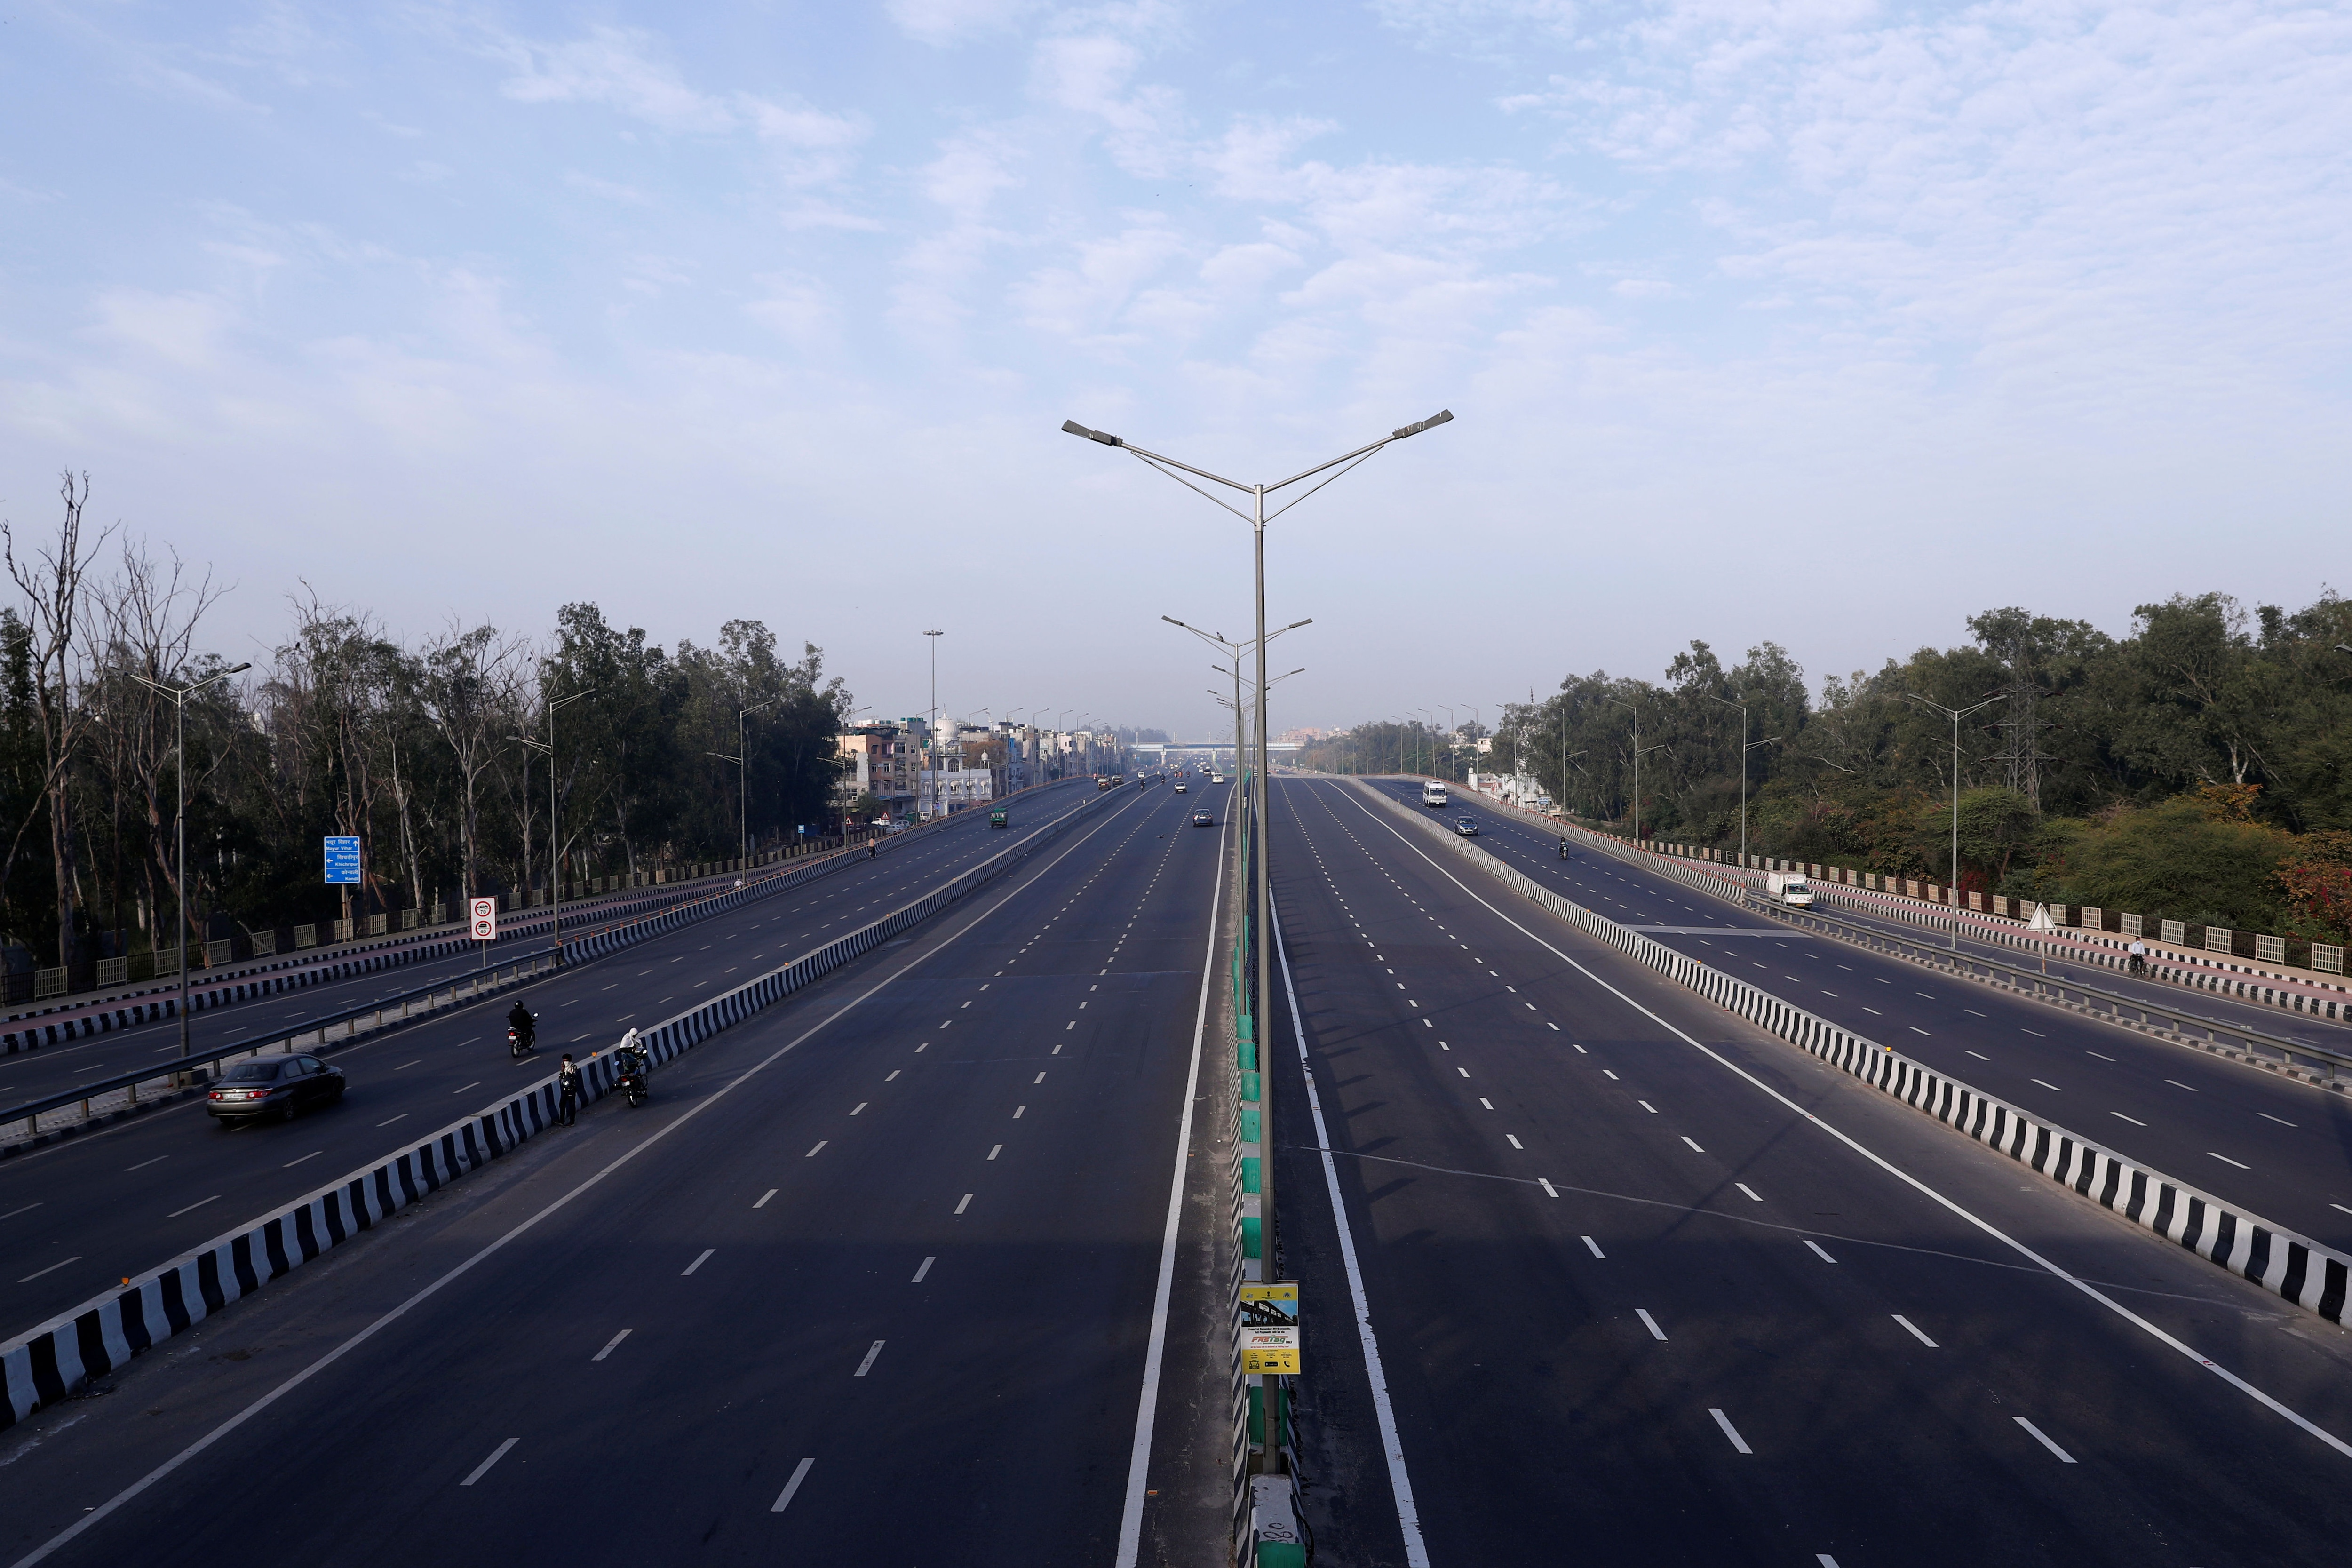 A general view shows an almost empty highway during lockdown by the authorities to limit the spreading of coronavirus disease (COVID-19), in New Delhi, India March 23, 2020. REUTERS/Adnan Abidi (REUTERS)